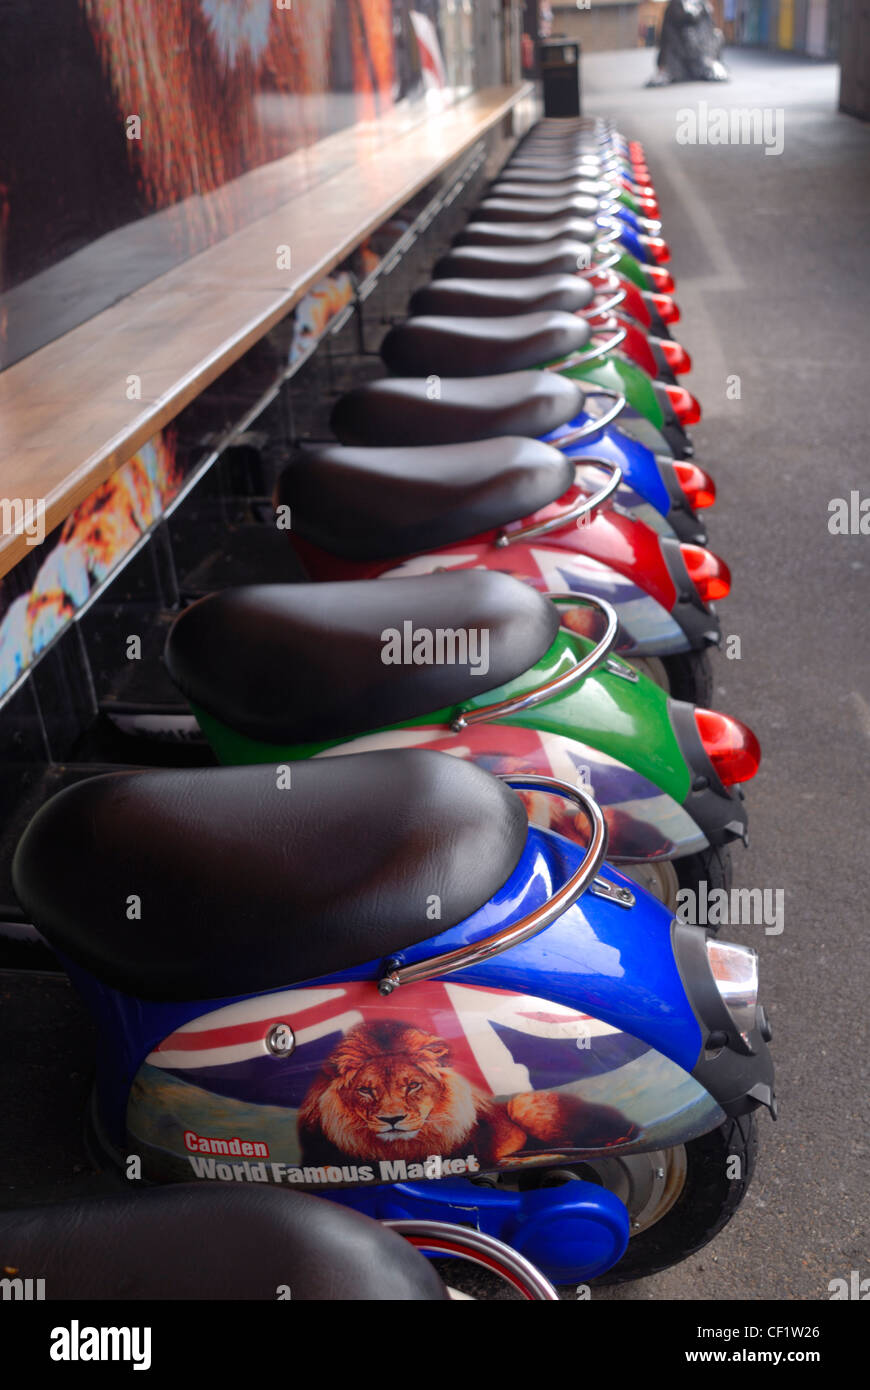 Novelty stools shaped like scooters in Camden market. - Stock Image